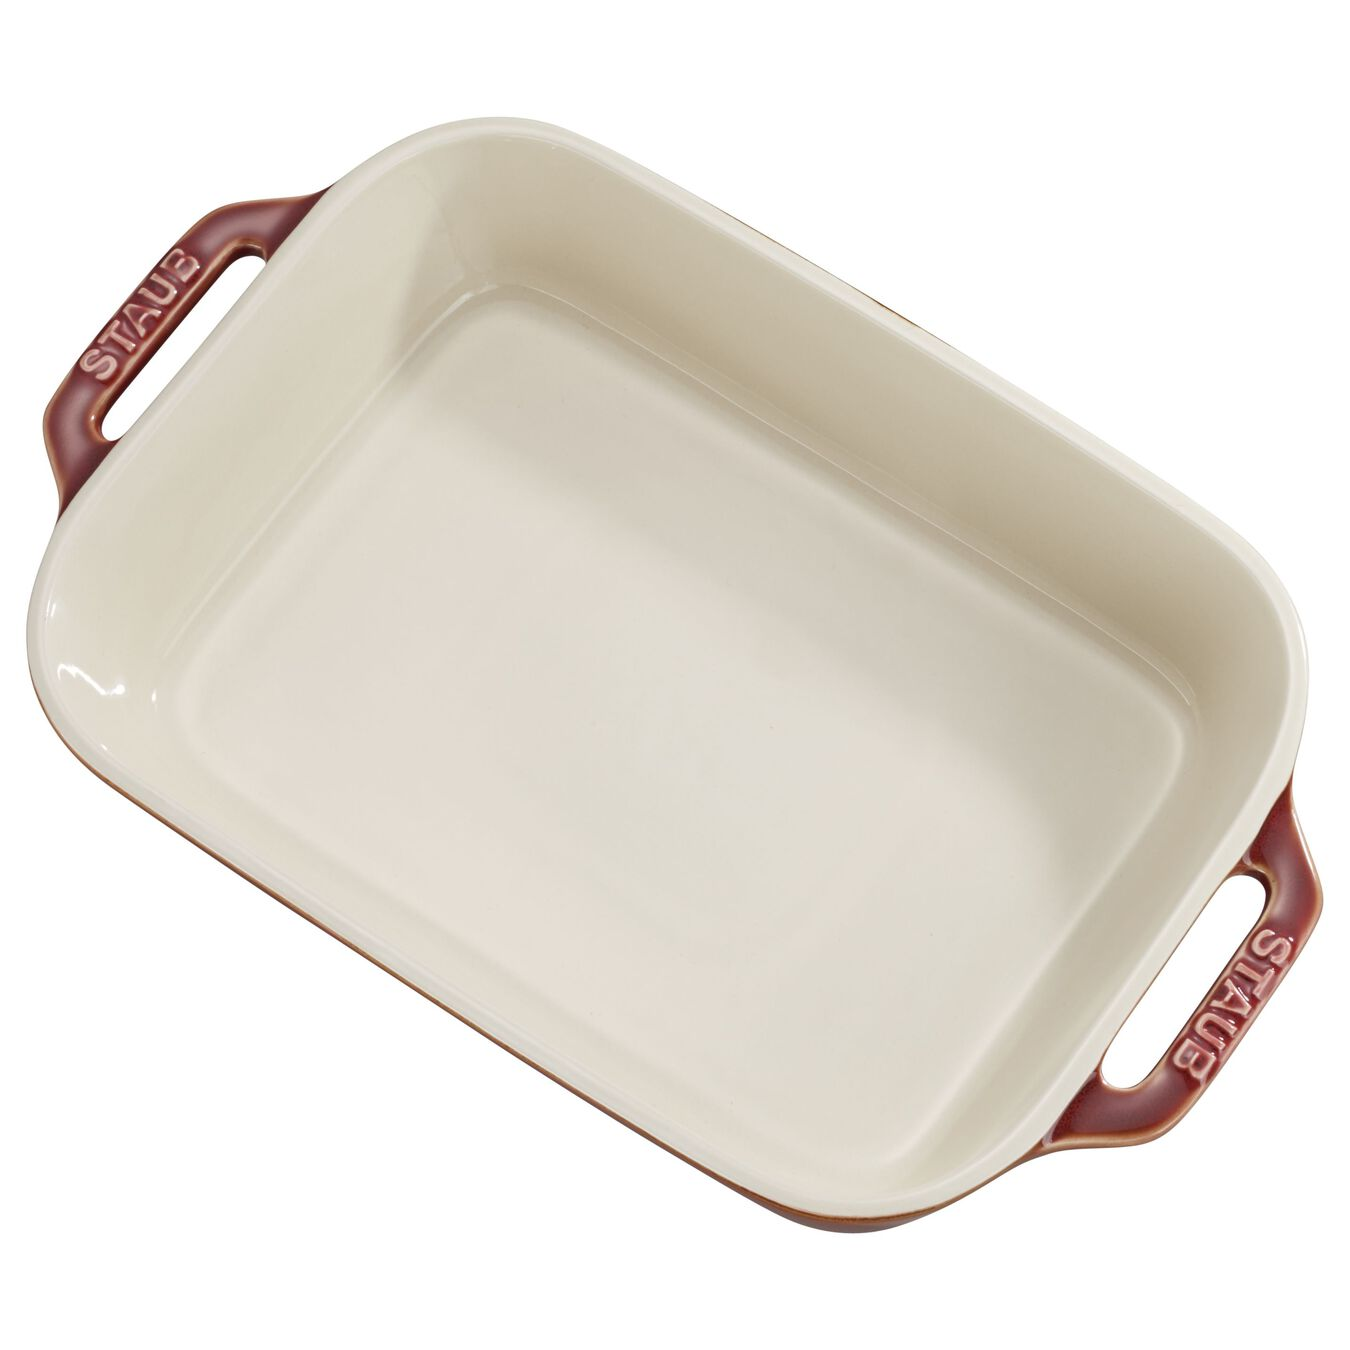 2-pc, square, Rectangular Baking Dish Set, red,,large 1